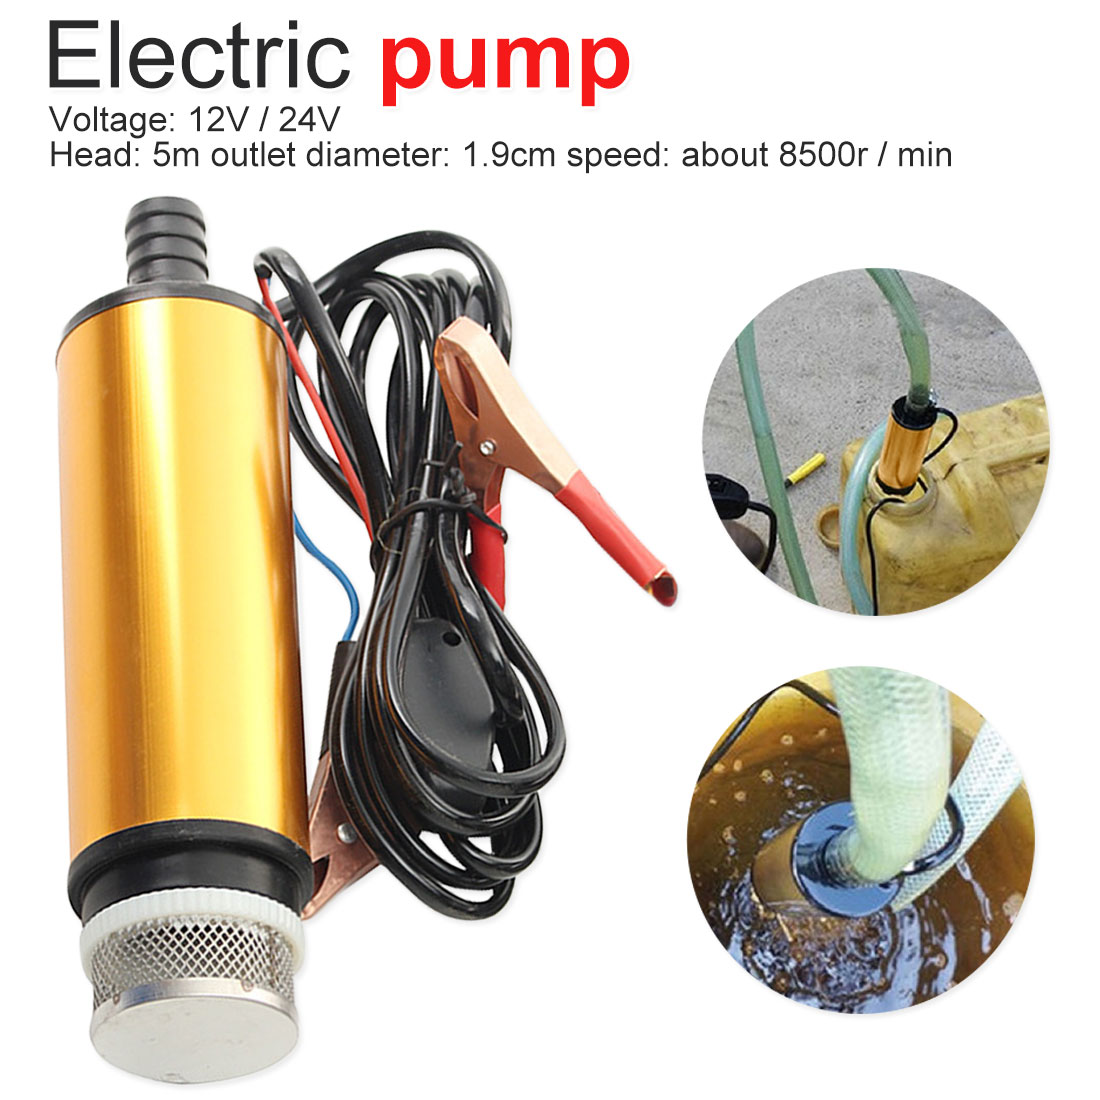 DC 12V Aluminum alloy Submersible Electric bilge pump for diesel/oil/water/fuel transfer 12 v volt 24volt image